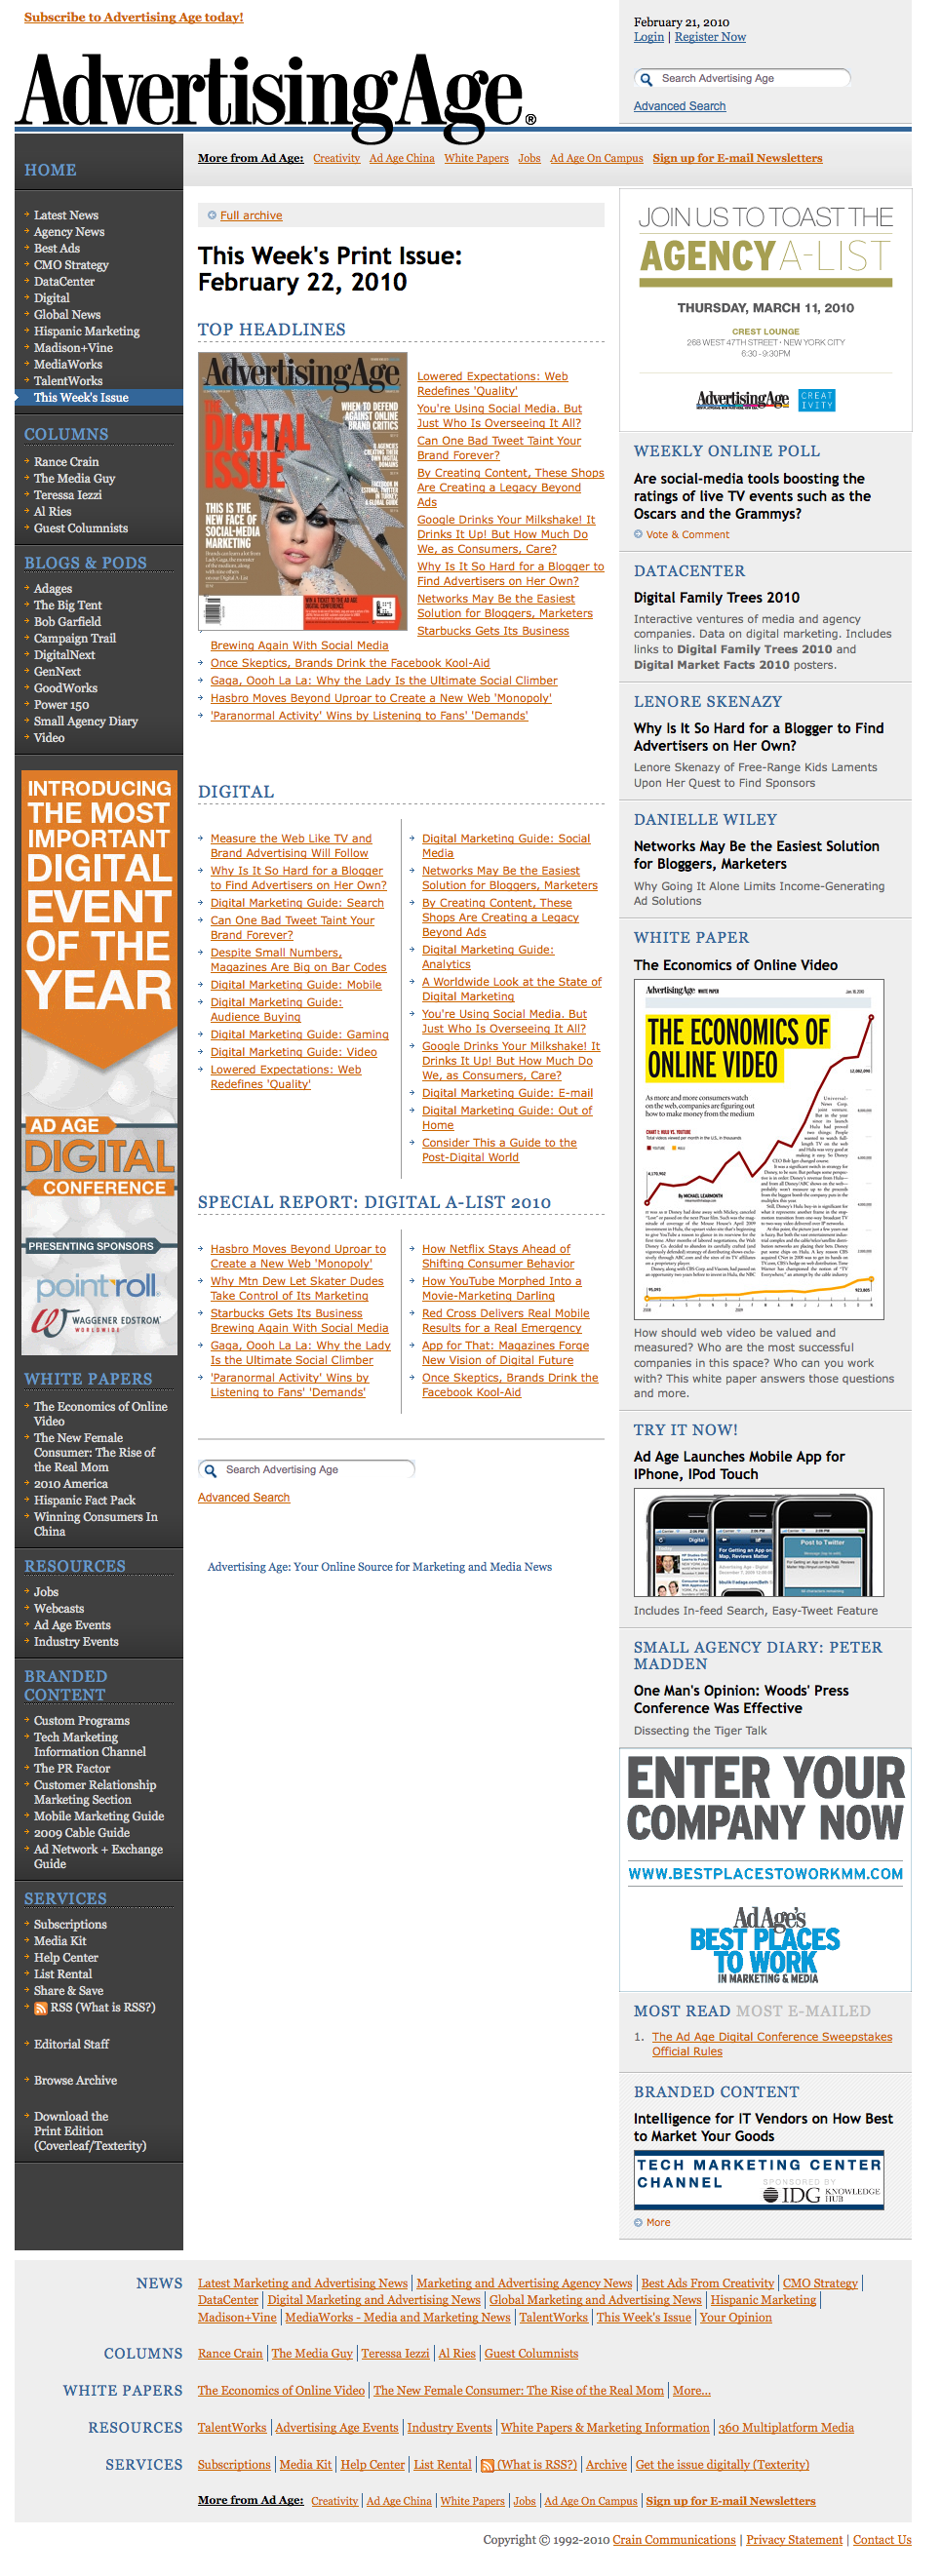 Advertising Age: This Week's Print Issue: The Digital Issue